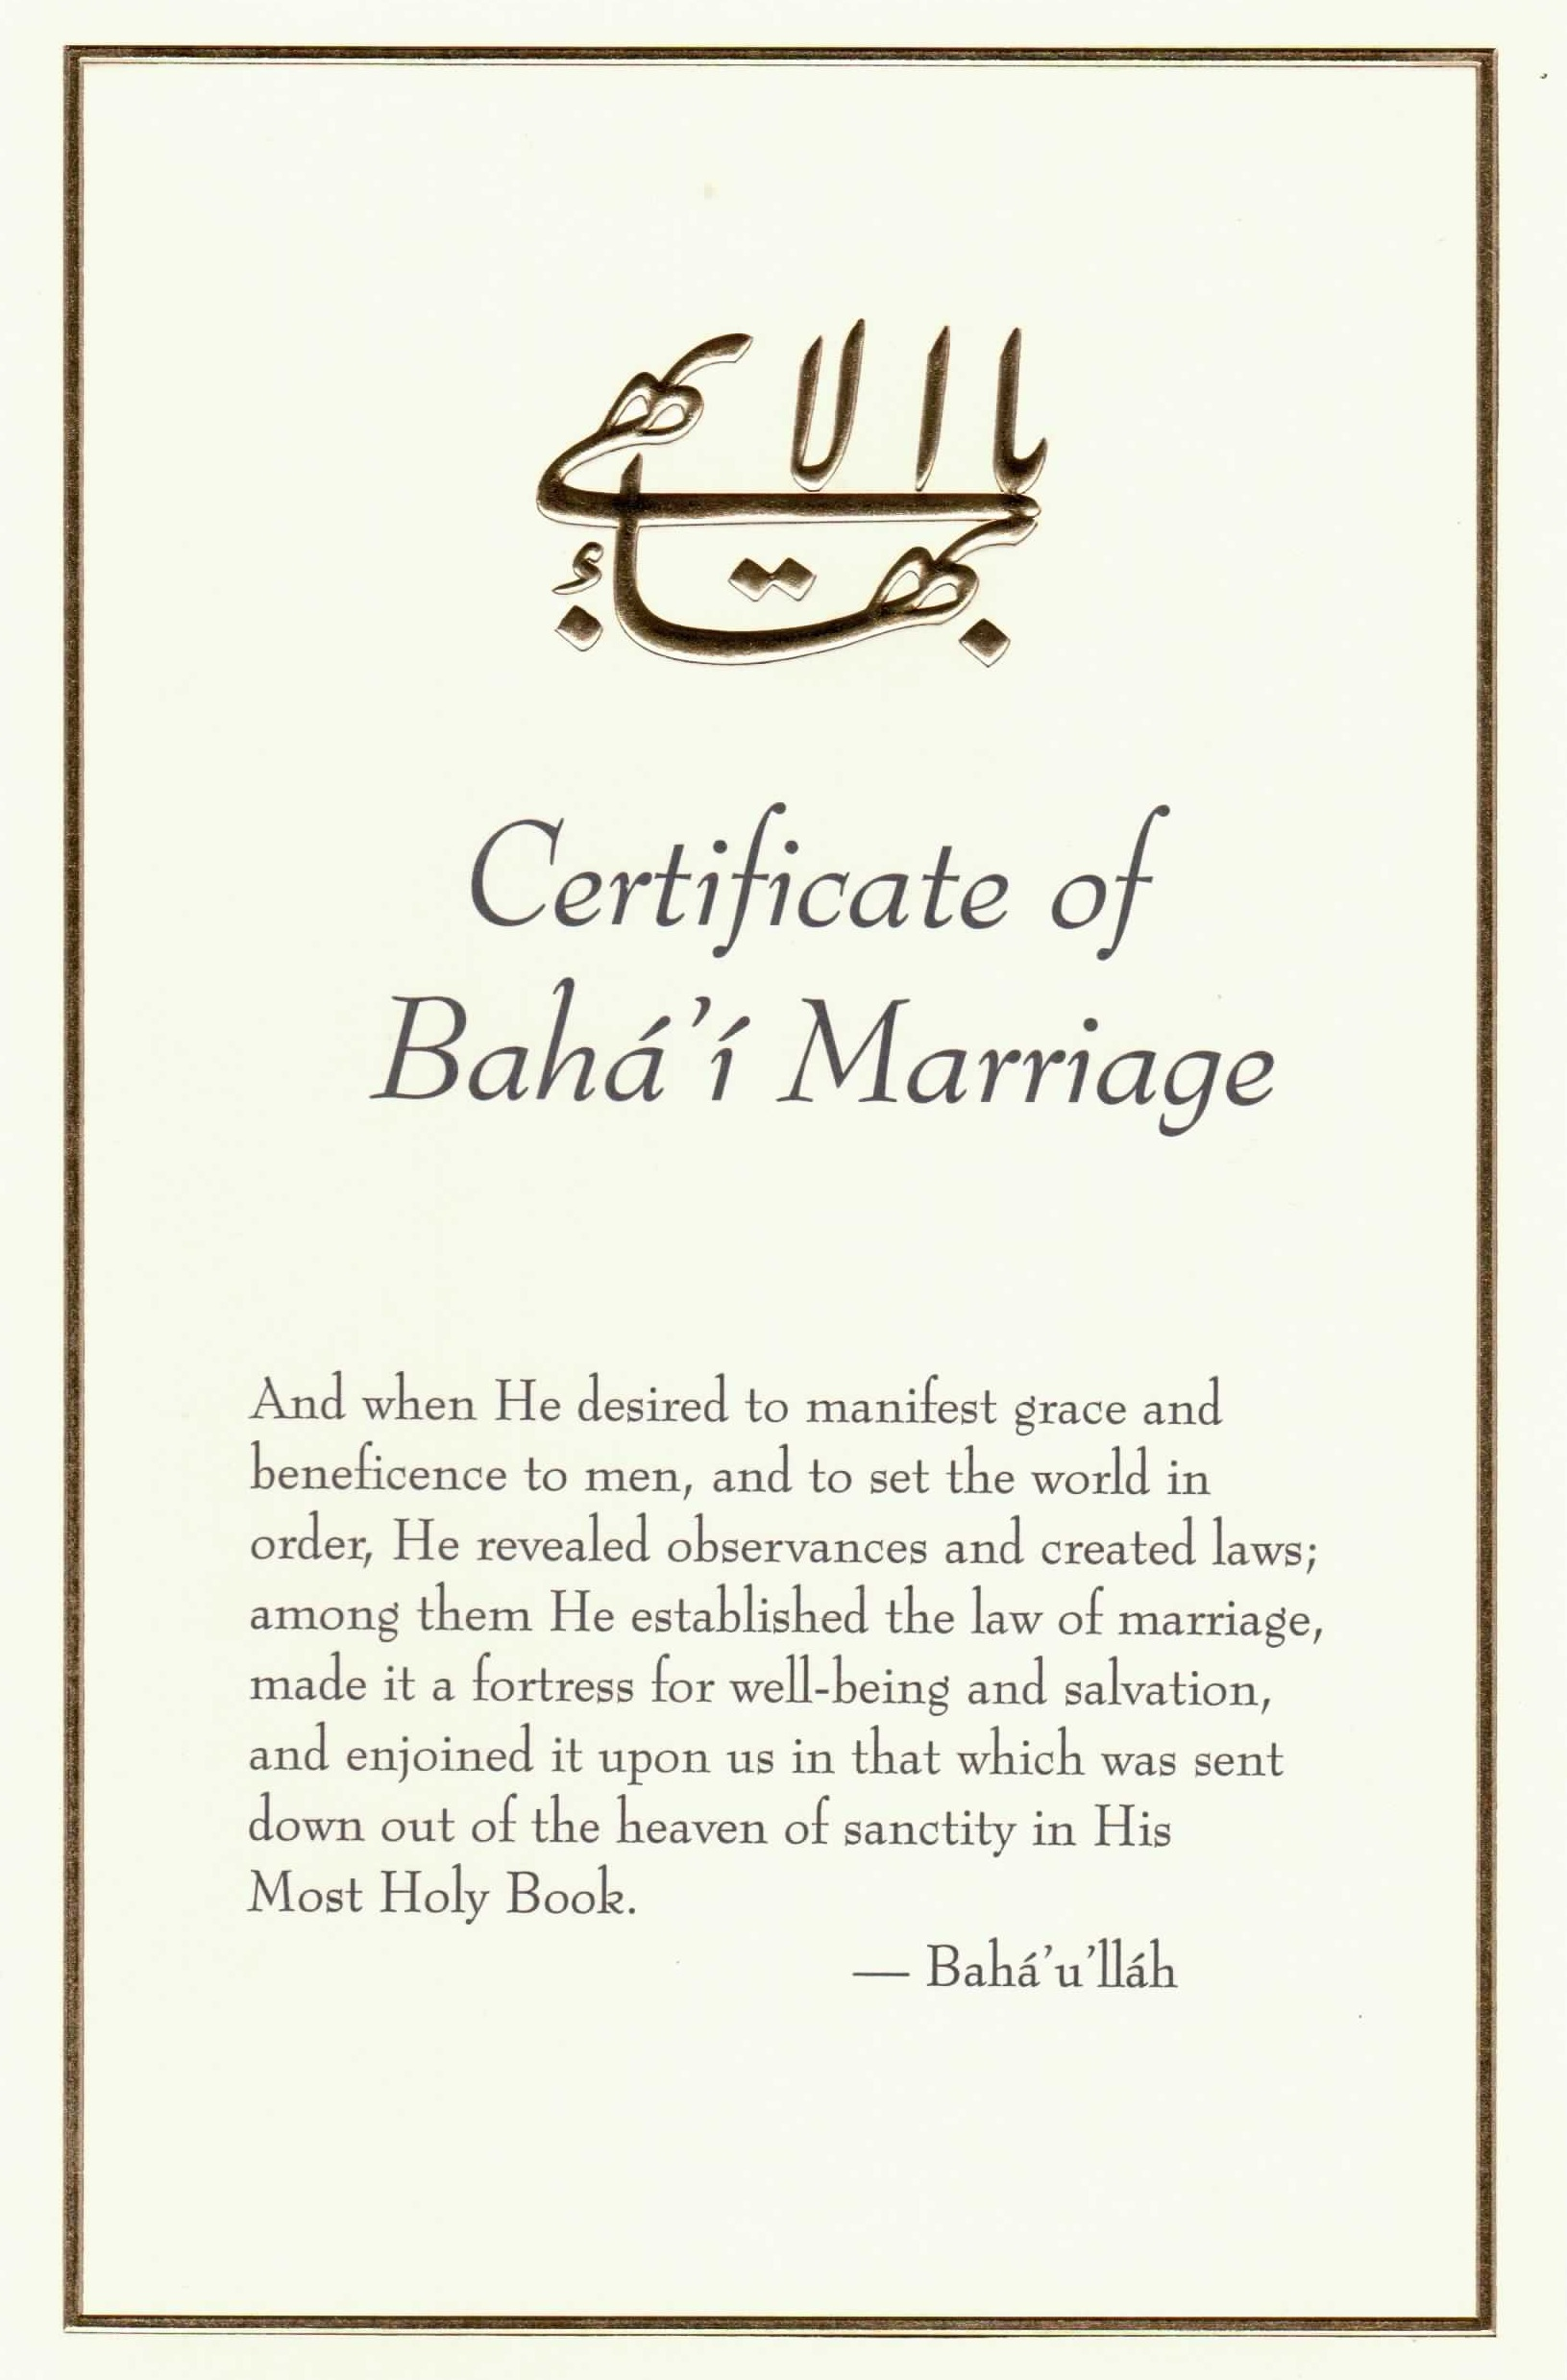 Baha'i Marriage Certificate wedding certificate